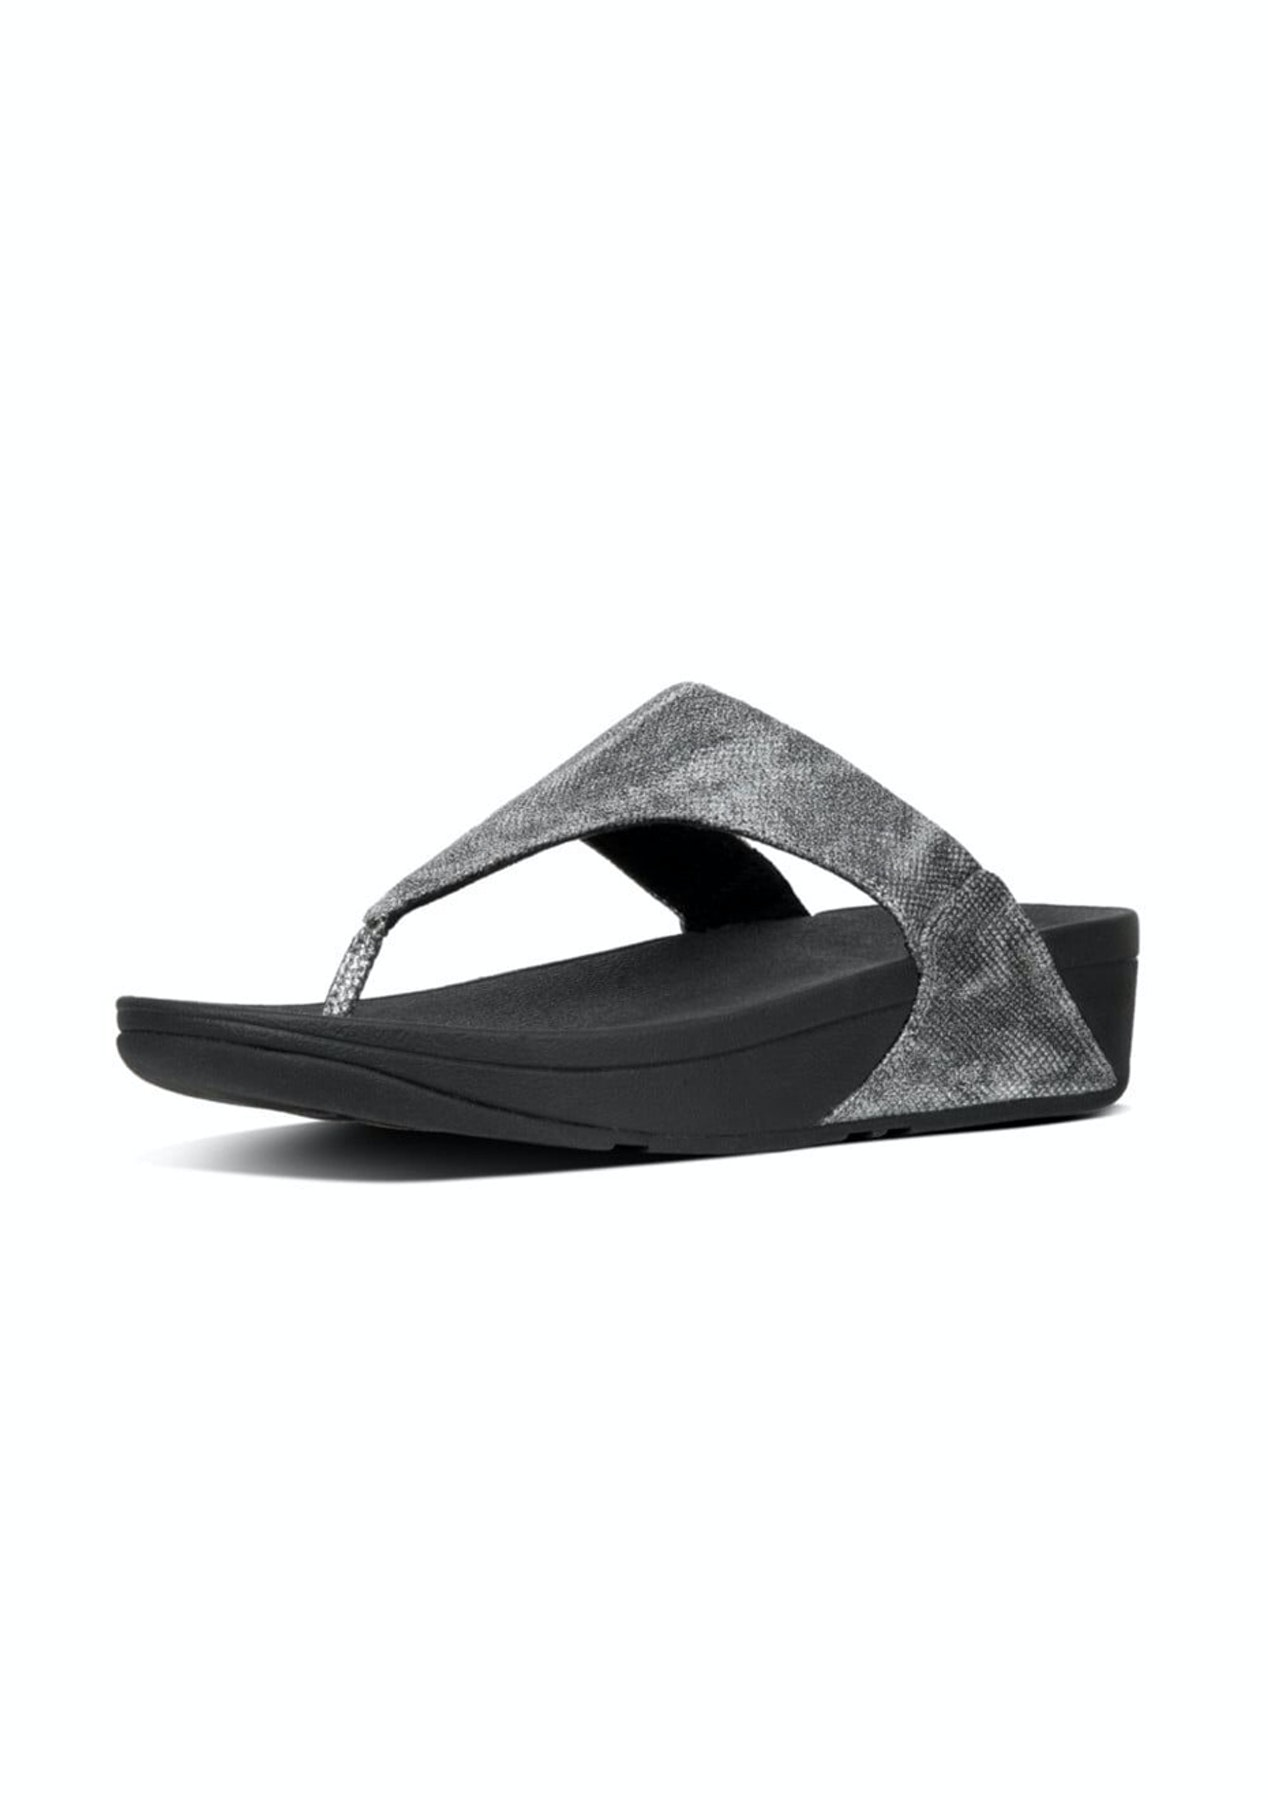 baeabb6f192 Fit Flop - Lulu Toe-Thong Sandals -Black Shimmer-Print - Fit Flop   More -  Onceit